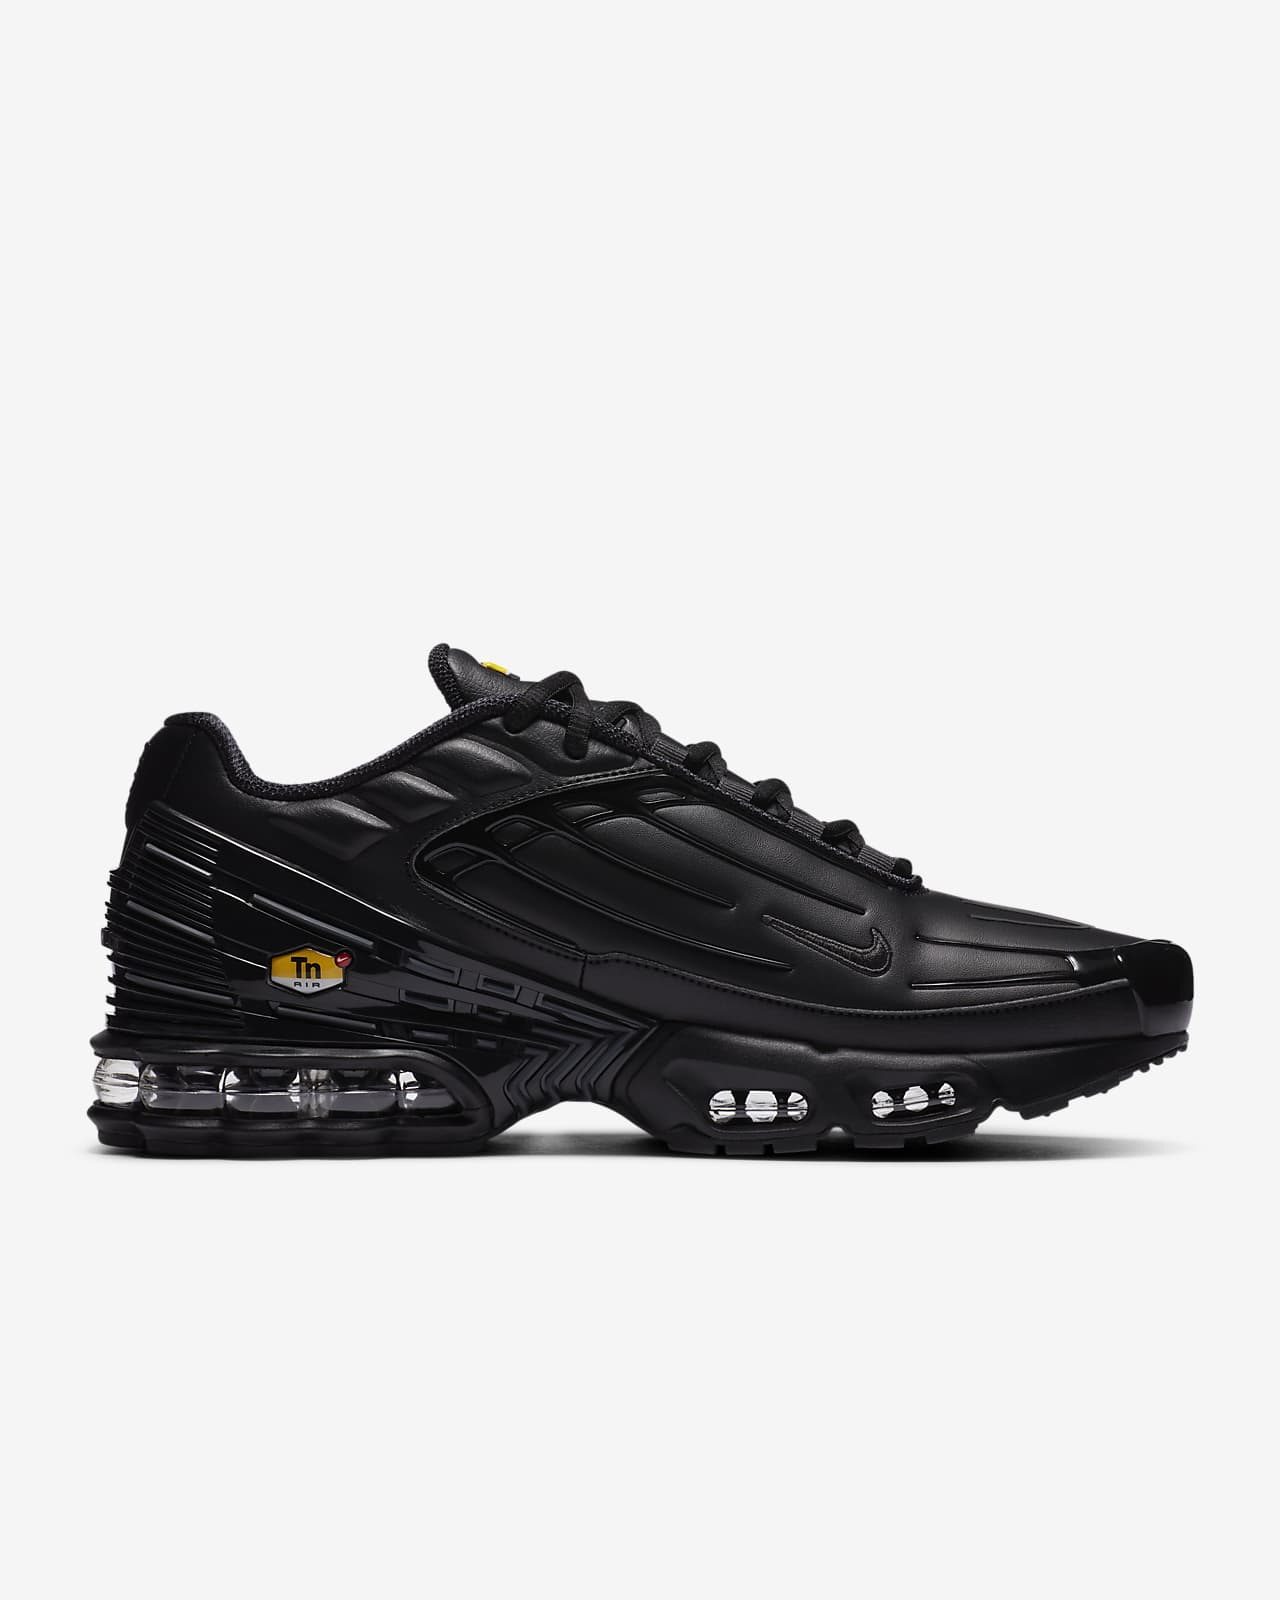 Air Max Plus Br Clearance Sale, UP TO 55% OFF